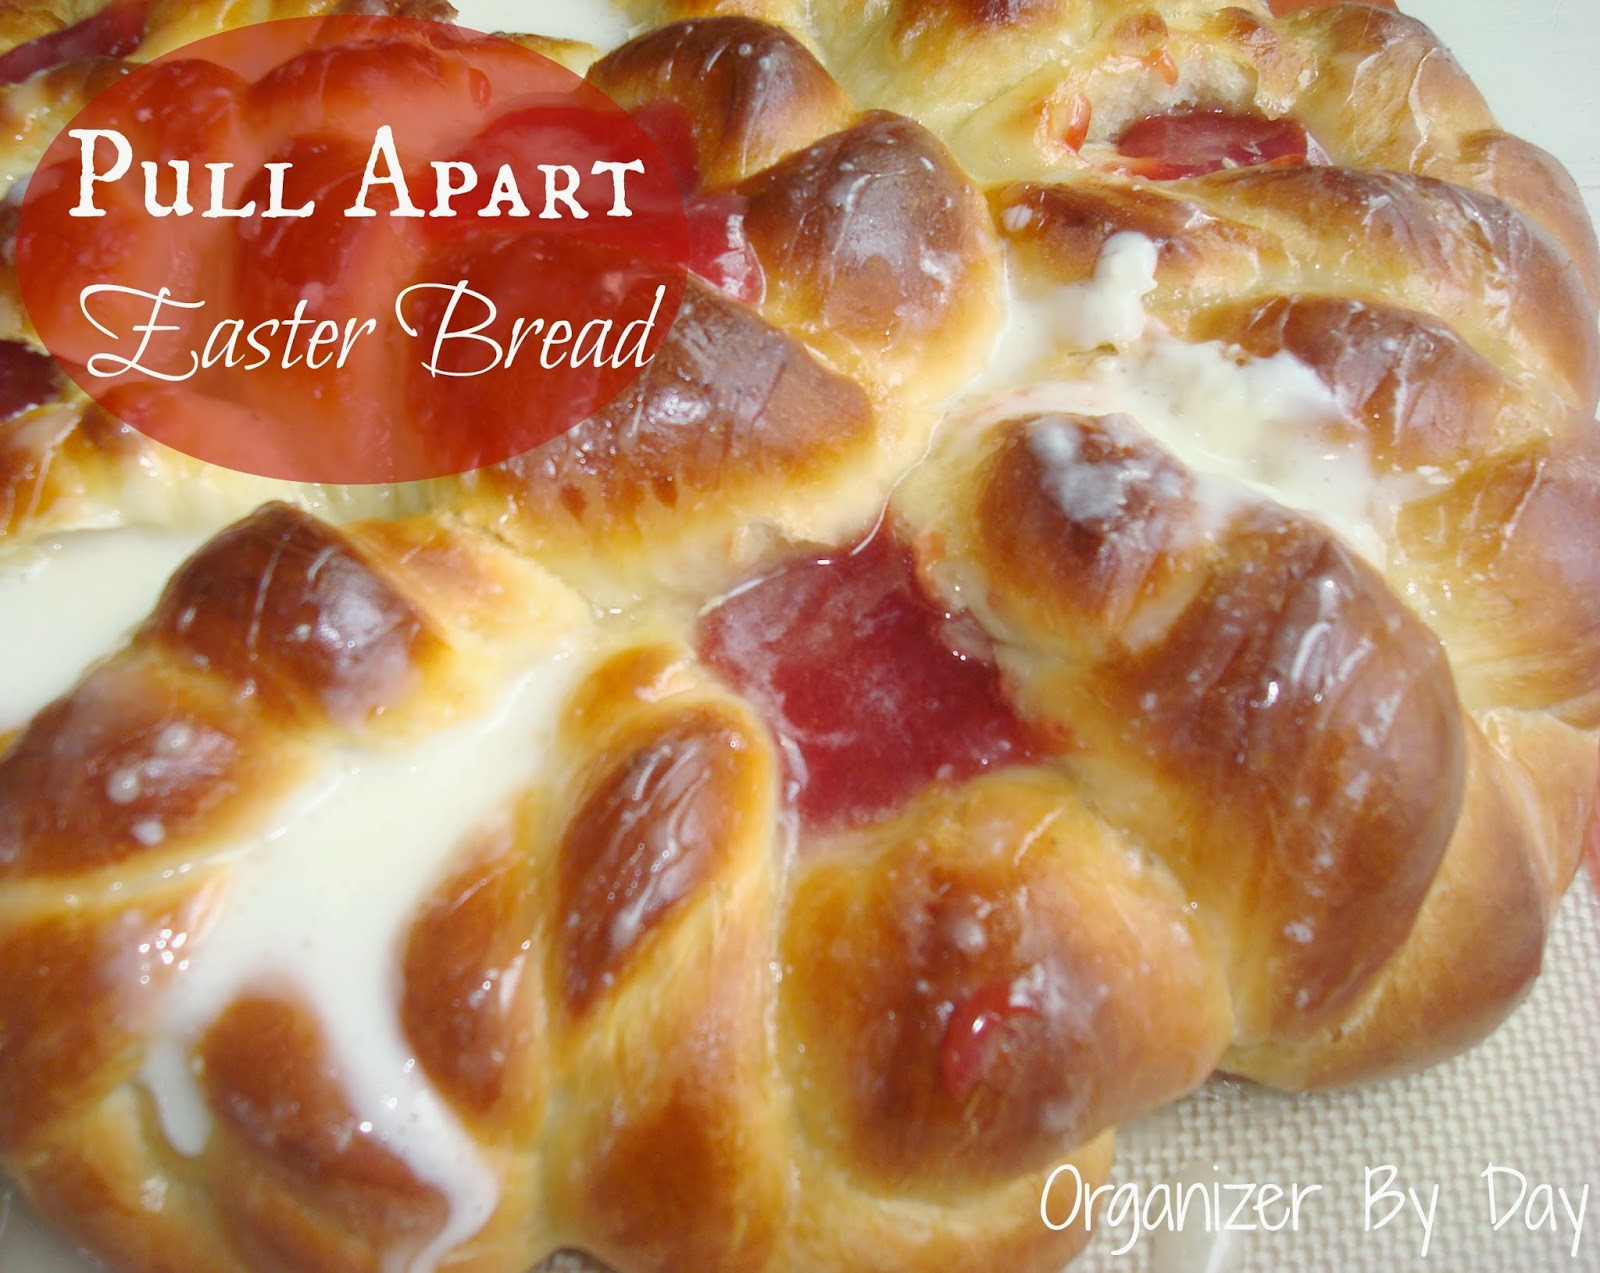 ... Chocolates and Crockpots! Come Check It Out!: Pull Apart Easter Bread